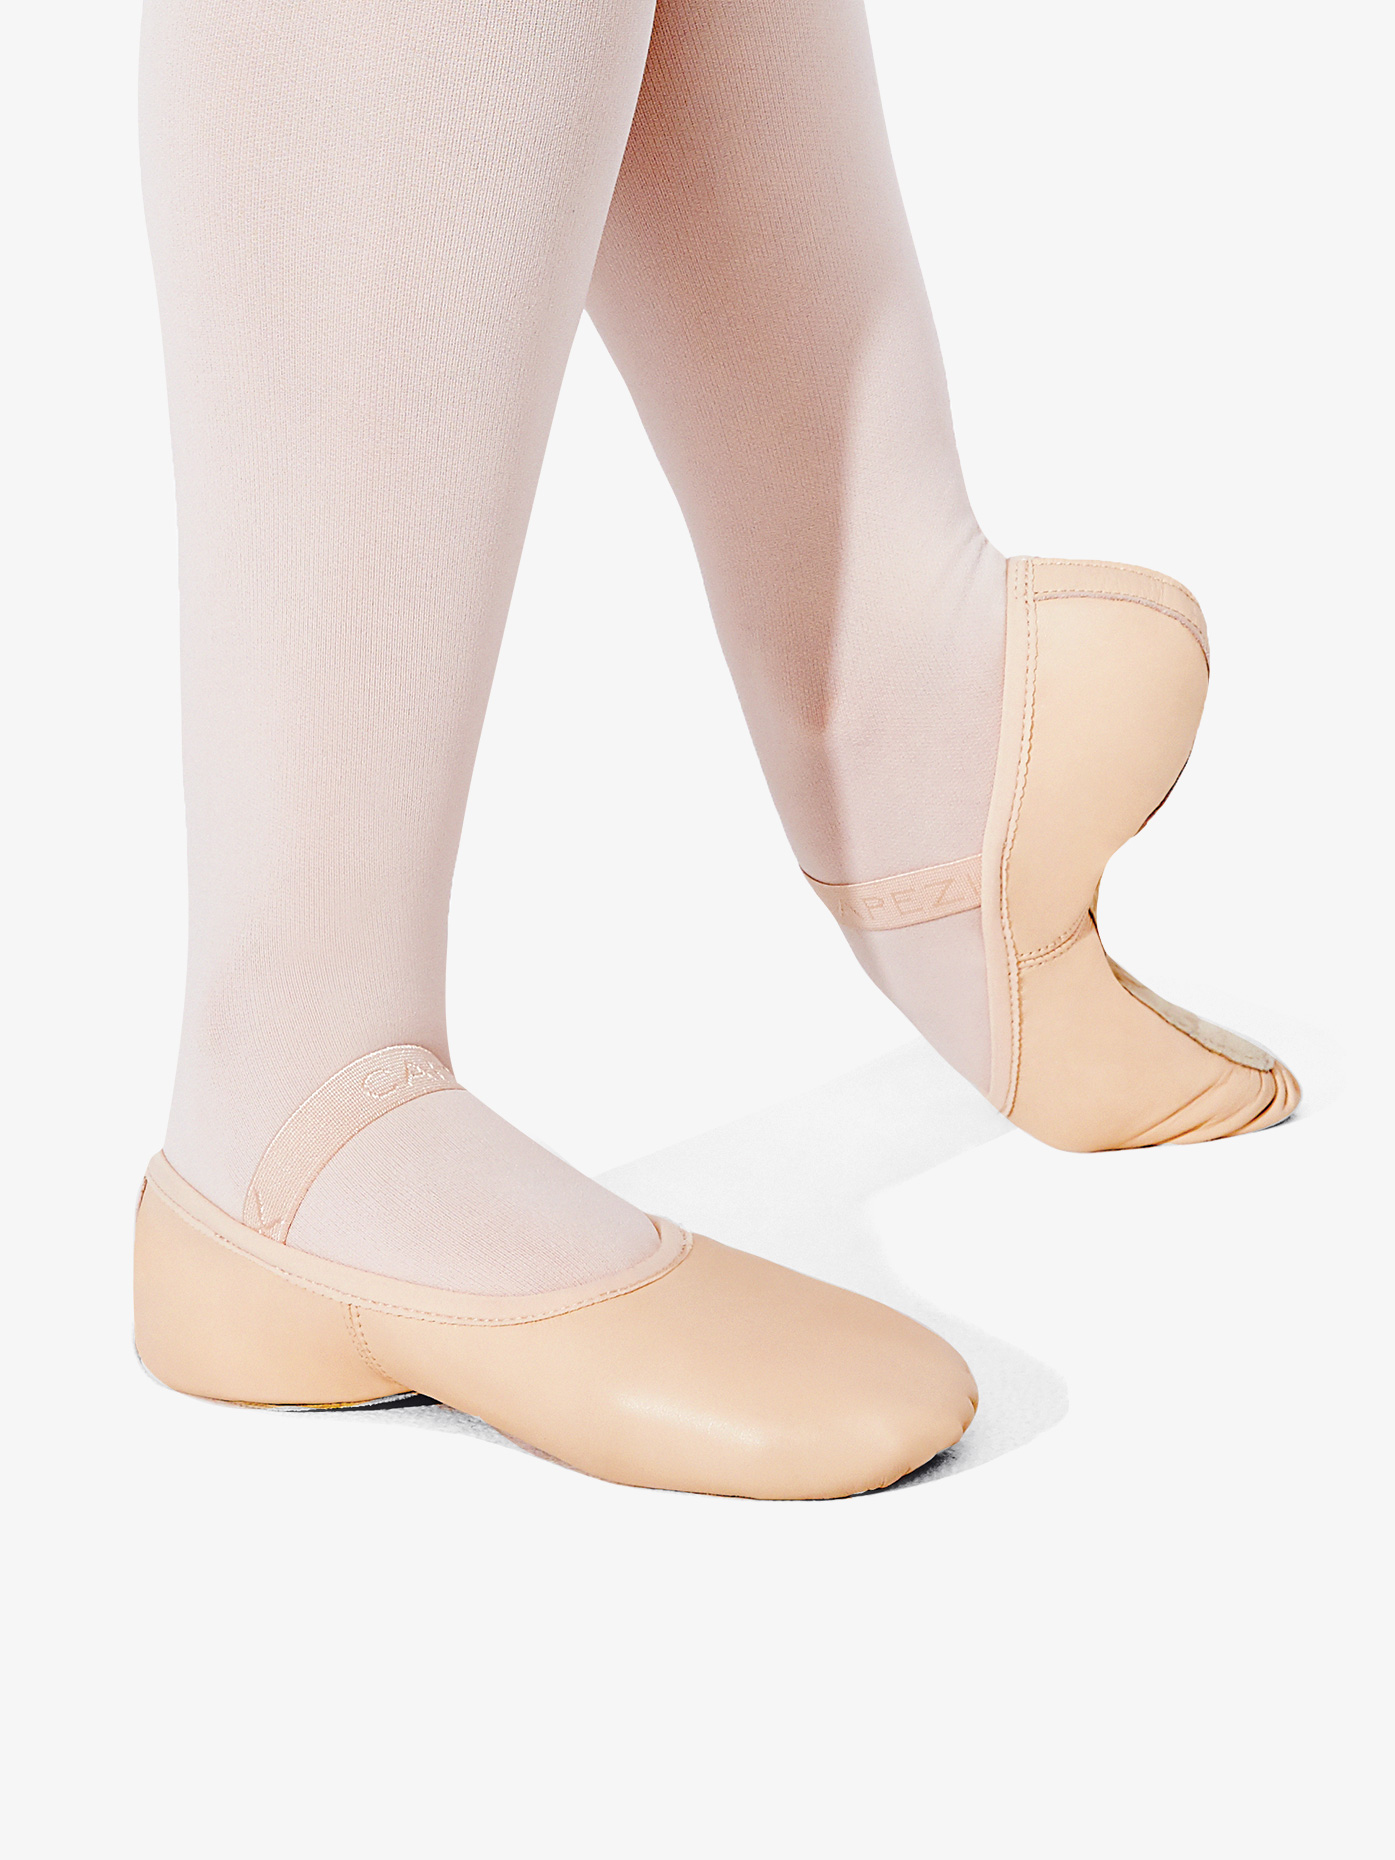 Capezio Girls Lily Full Sole Leather Ballet Shoes 212C